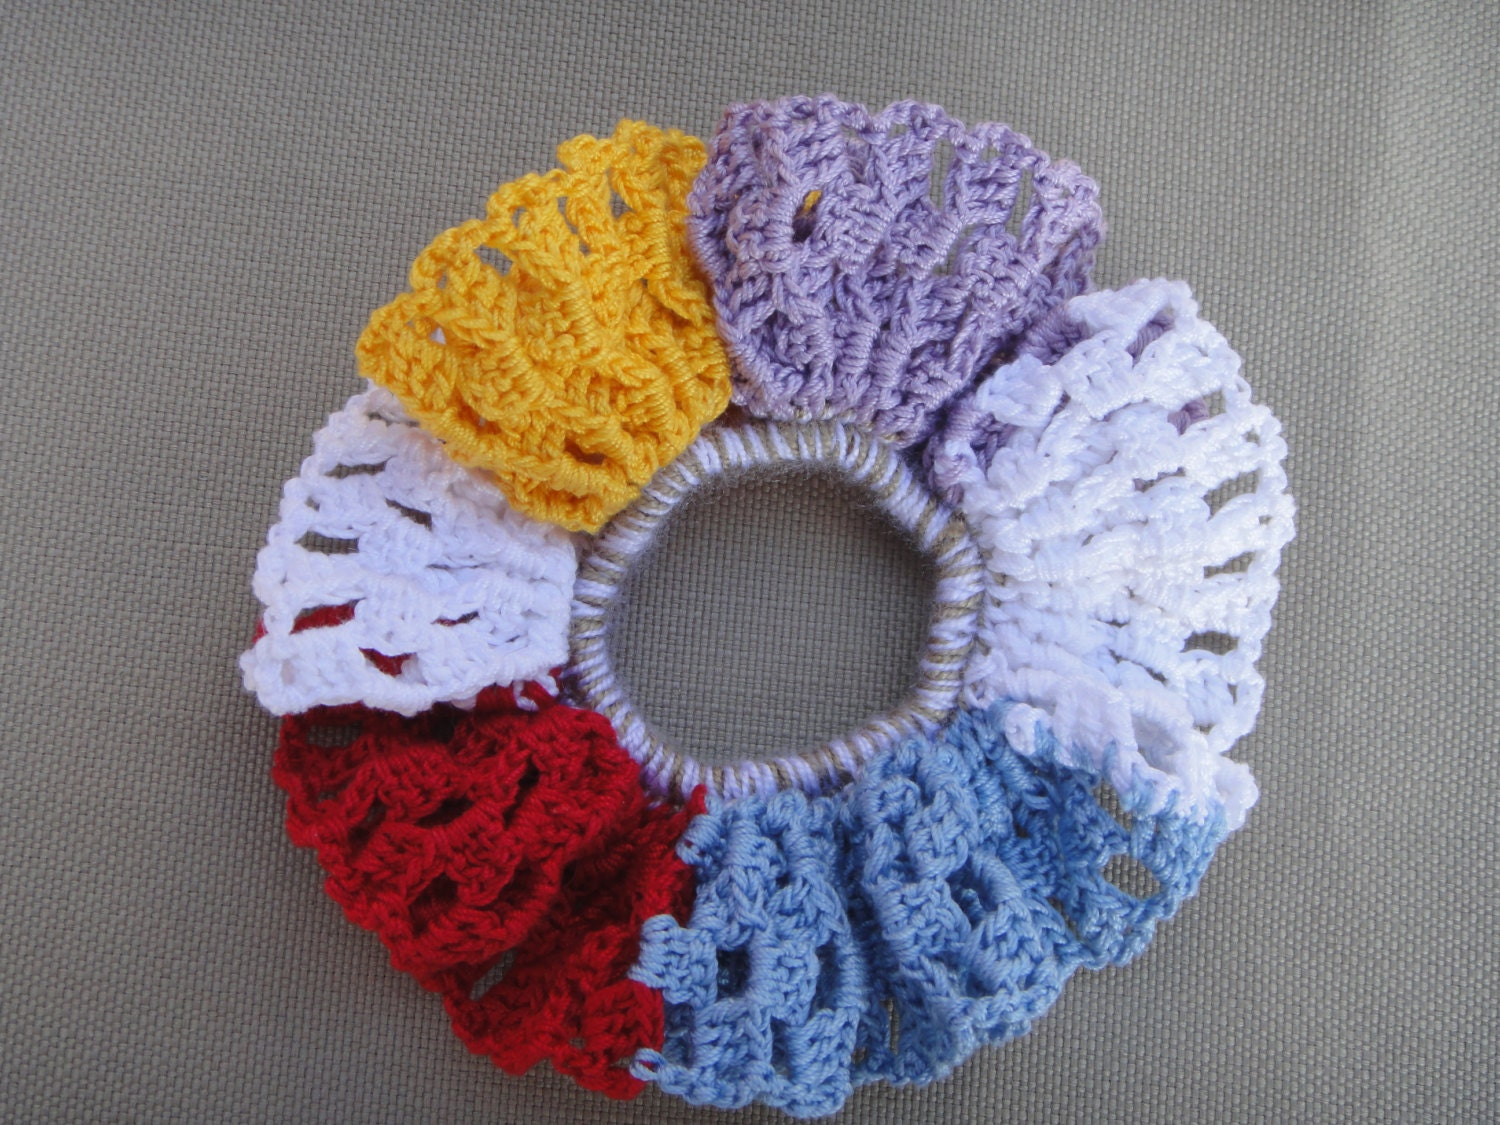 Crochet Hair Ties : Crochet scrunchie. Crochet hair ties. by Cre8tiveLifestyle on Etsy